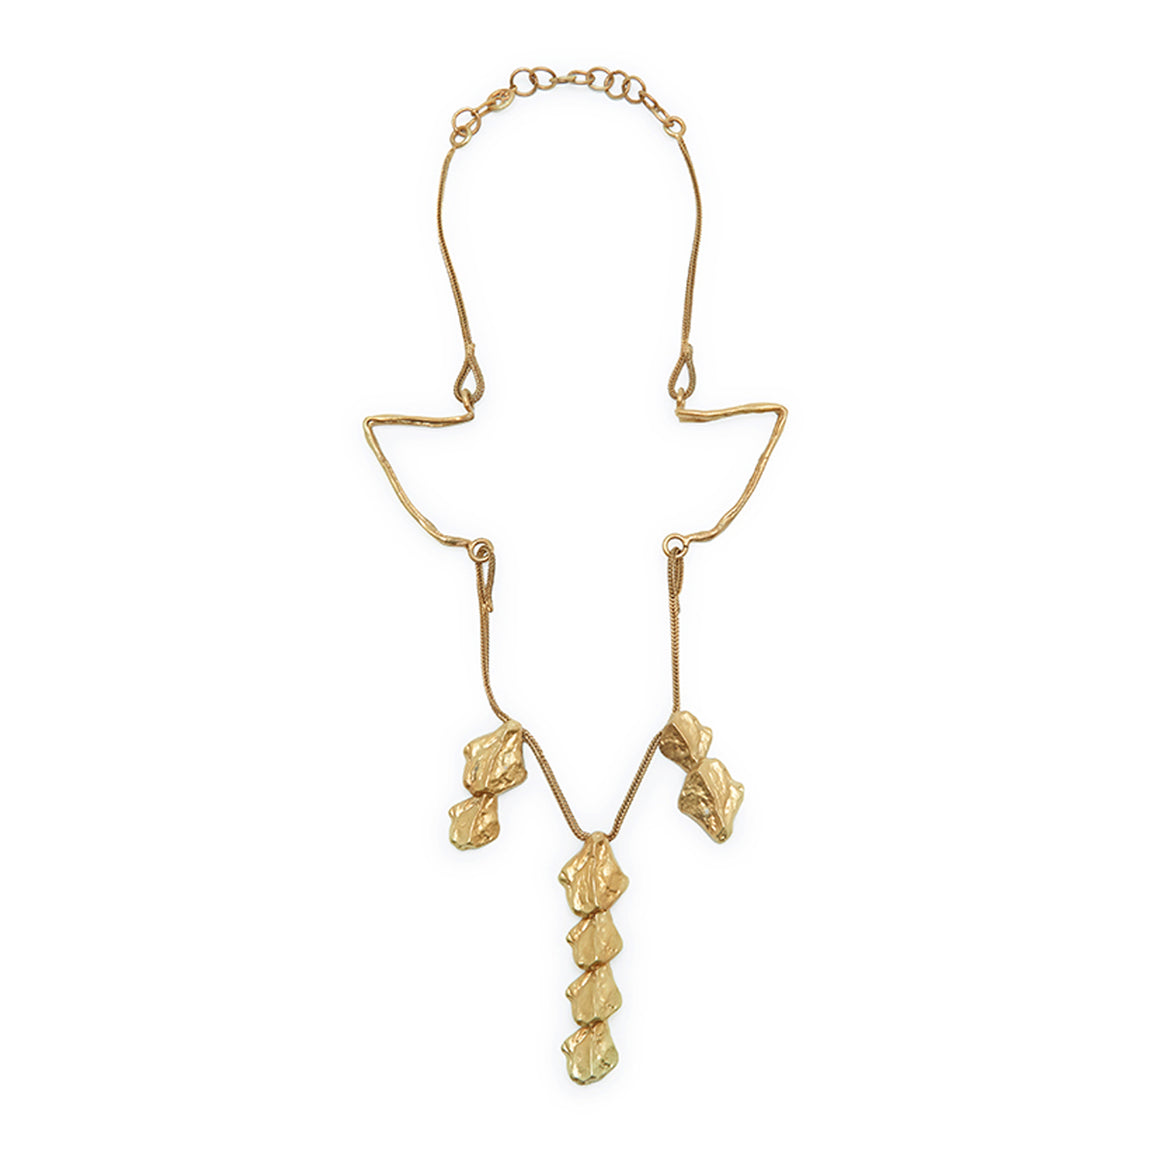 Spine Resting Necklace in Gold Design by Alexandra Koumba